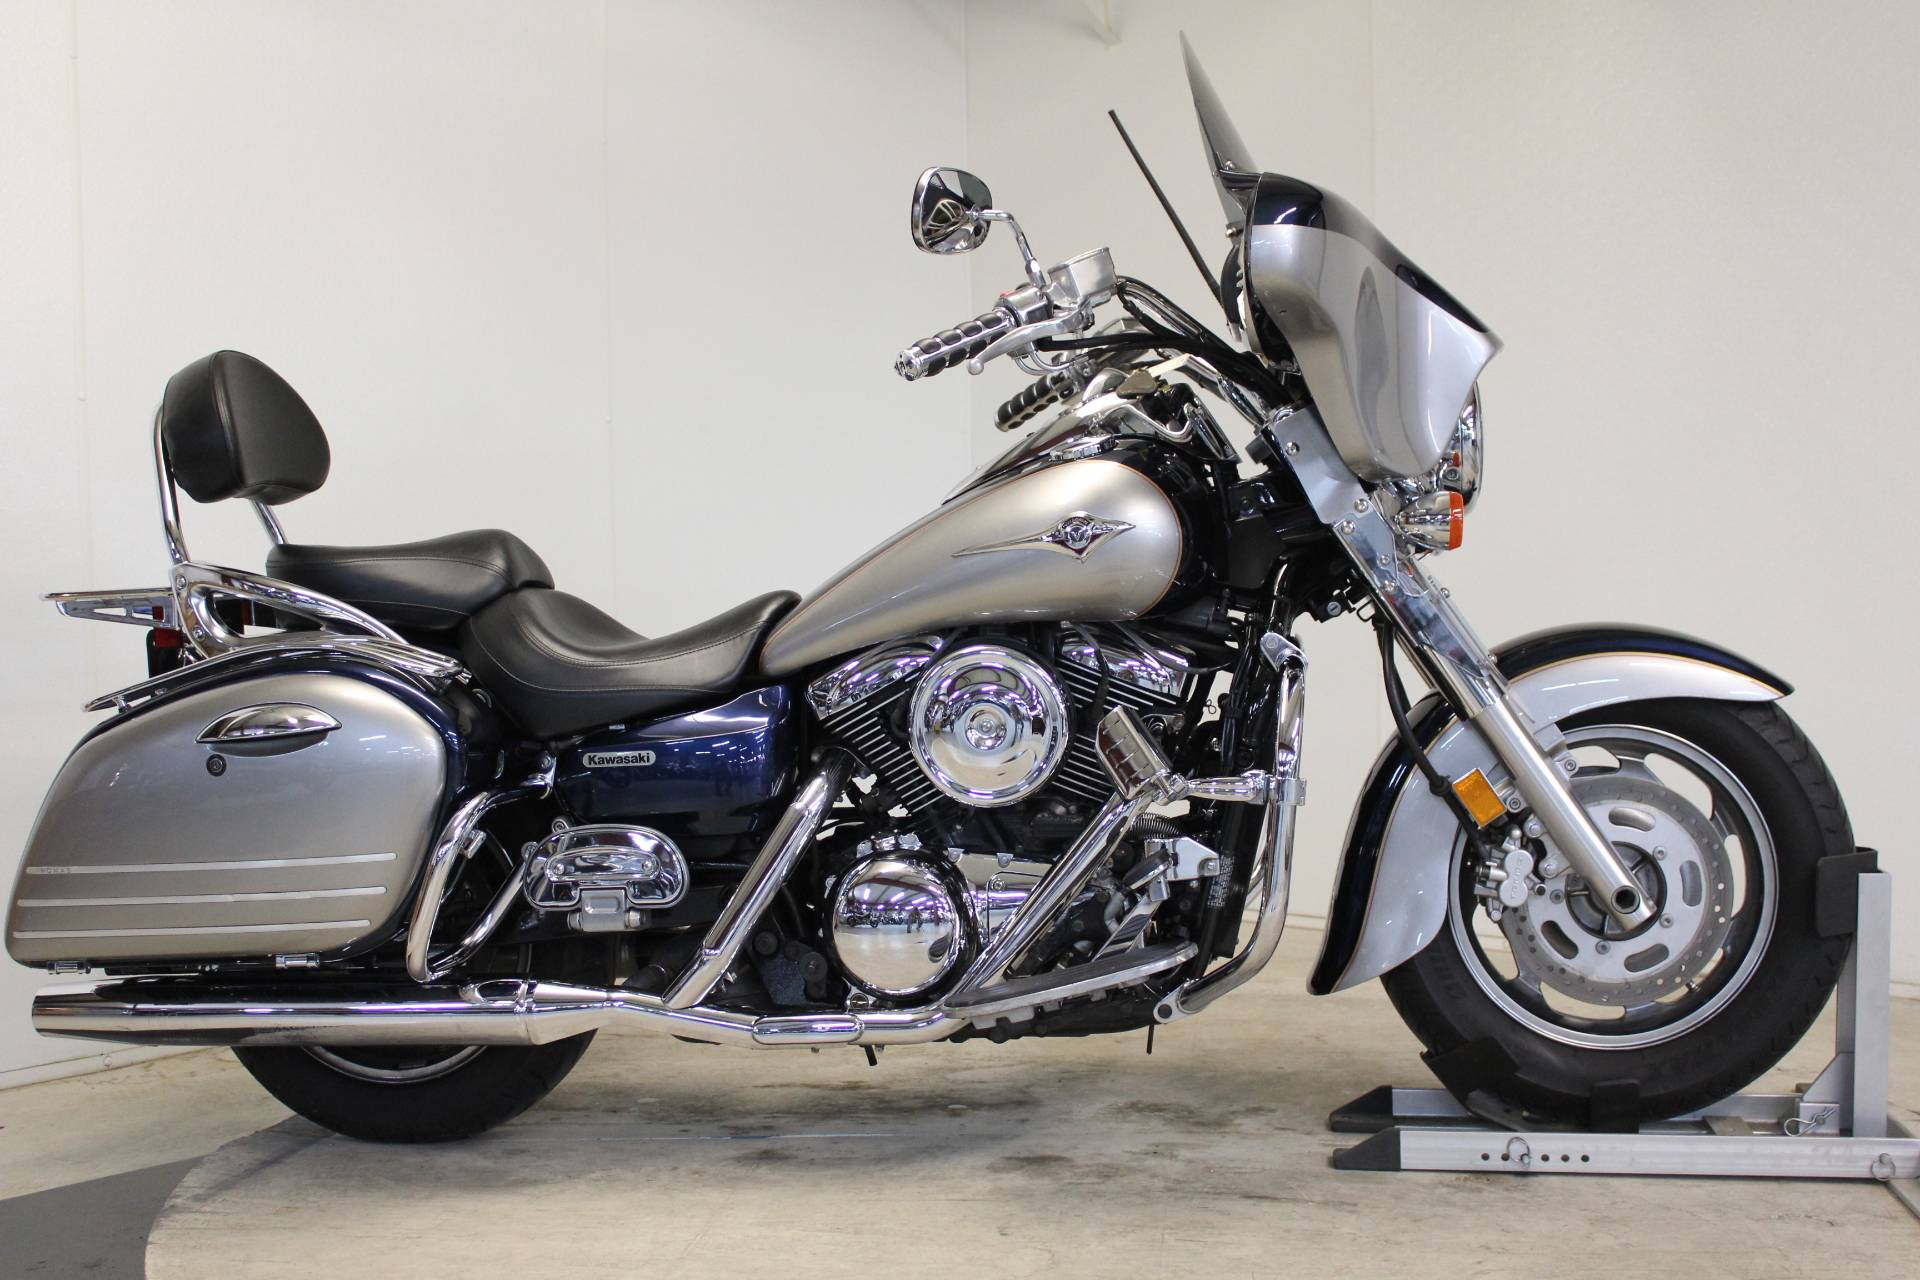 2005 Kawasaki Vulcan 1600 Nomad in Pittsfield, Massachusetts - Photo 1